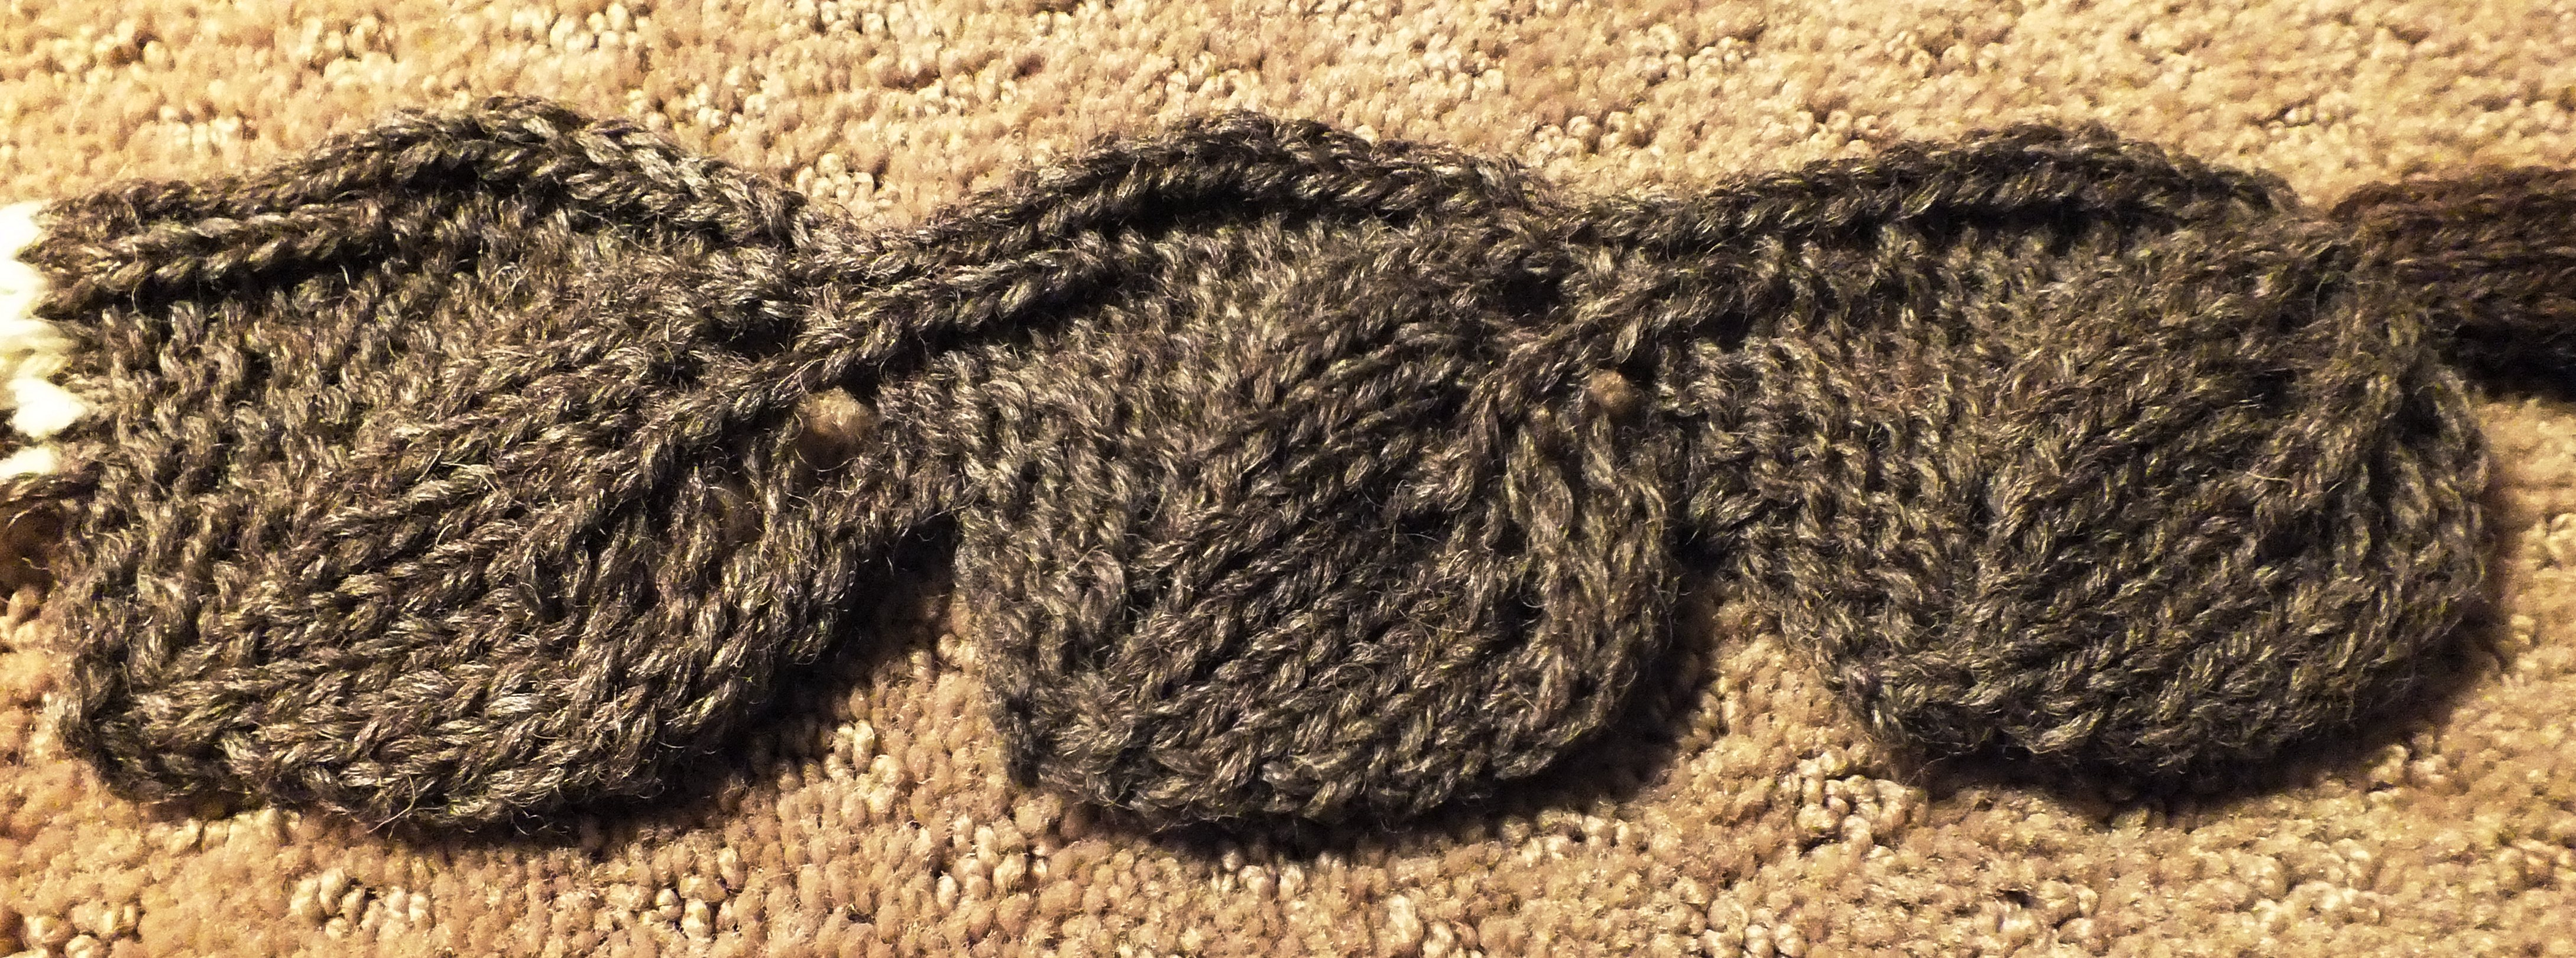 Knitted leaf trim cckittenknitss weblog the design first appeared in the nihon vogue springsummer 1990 hand knitting issue bankloansurffo Choice Image